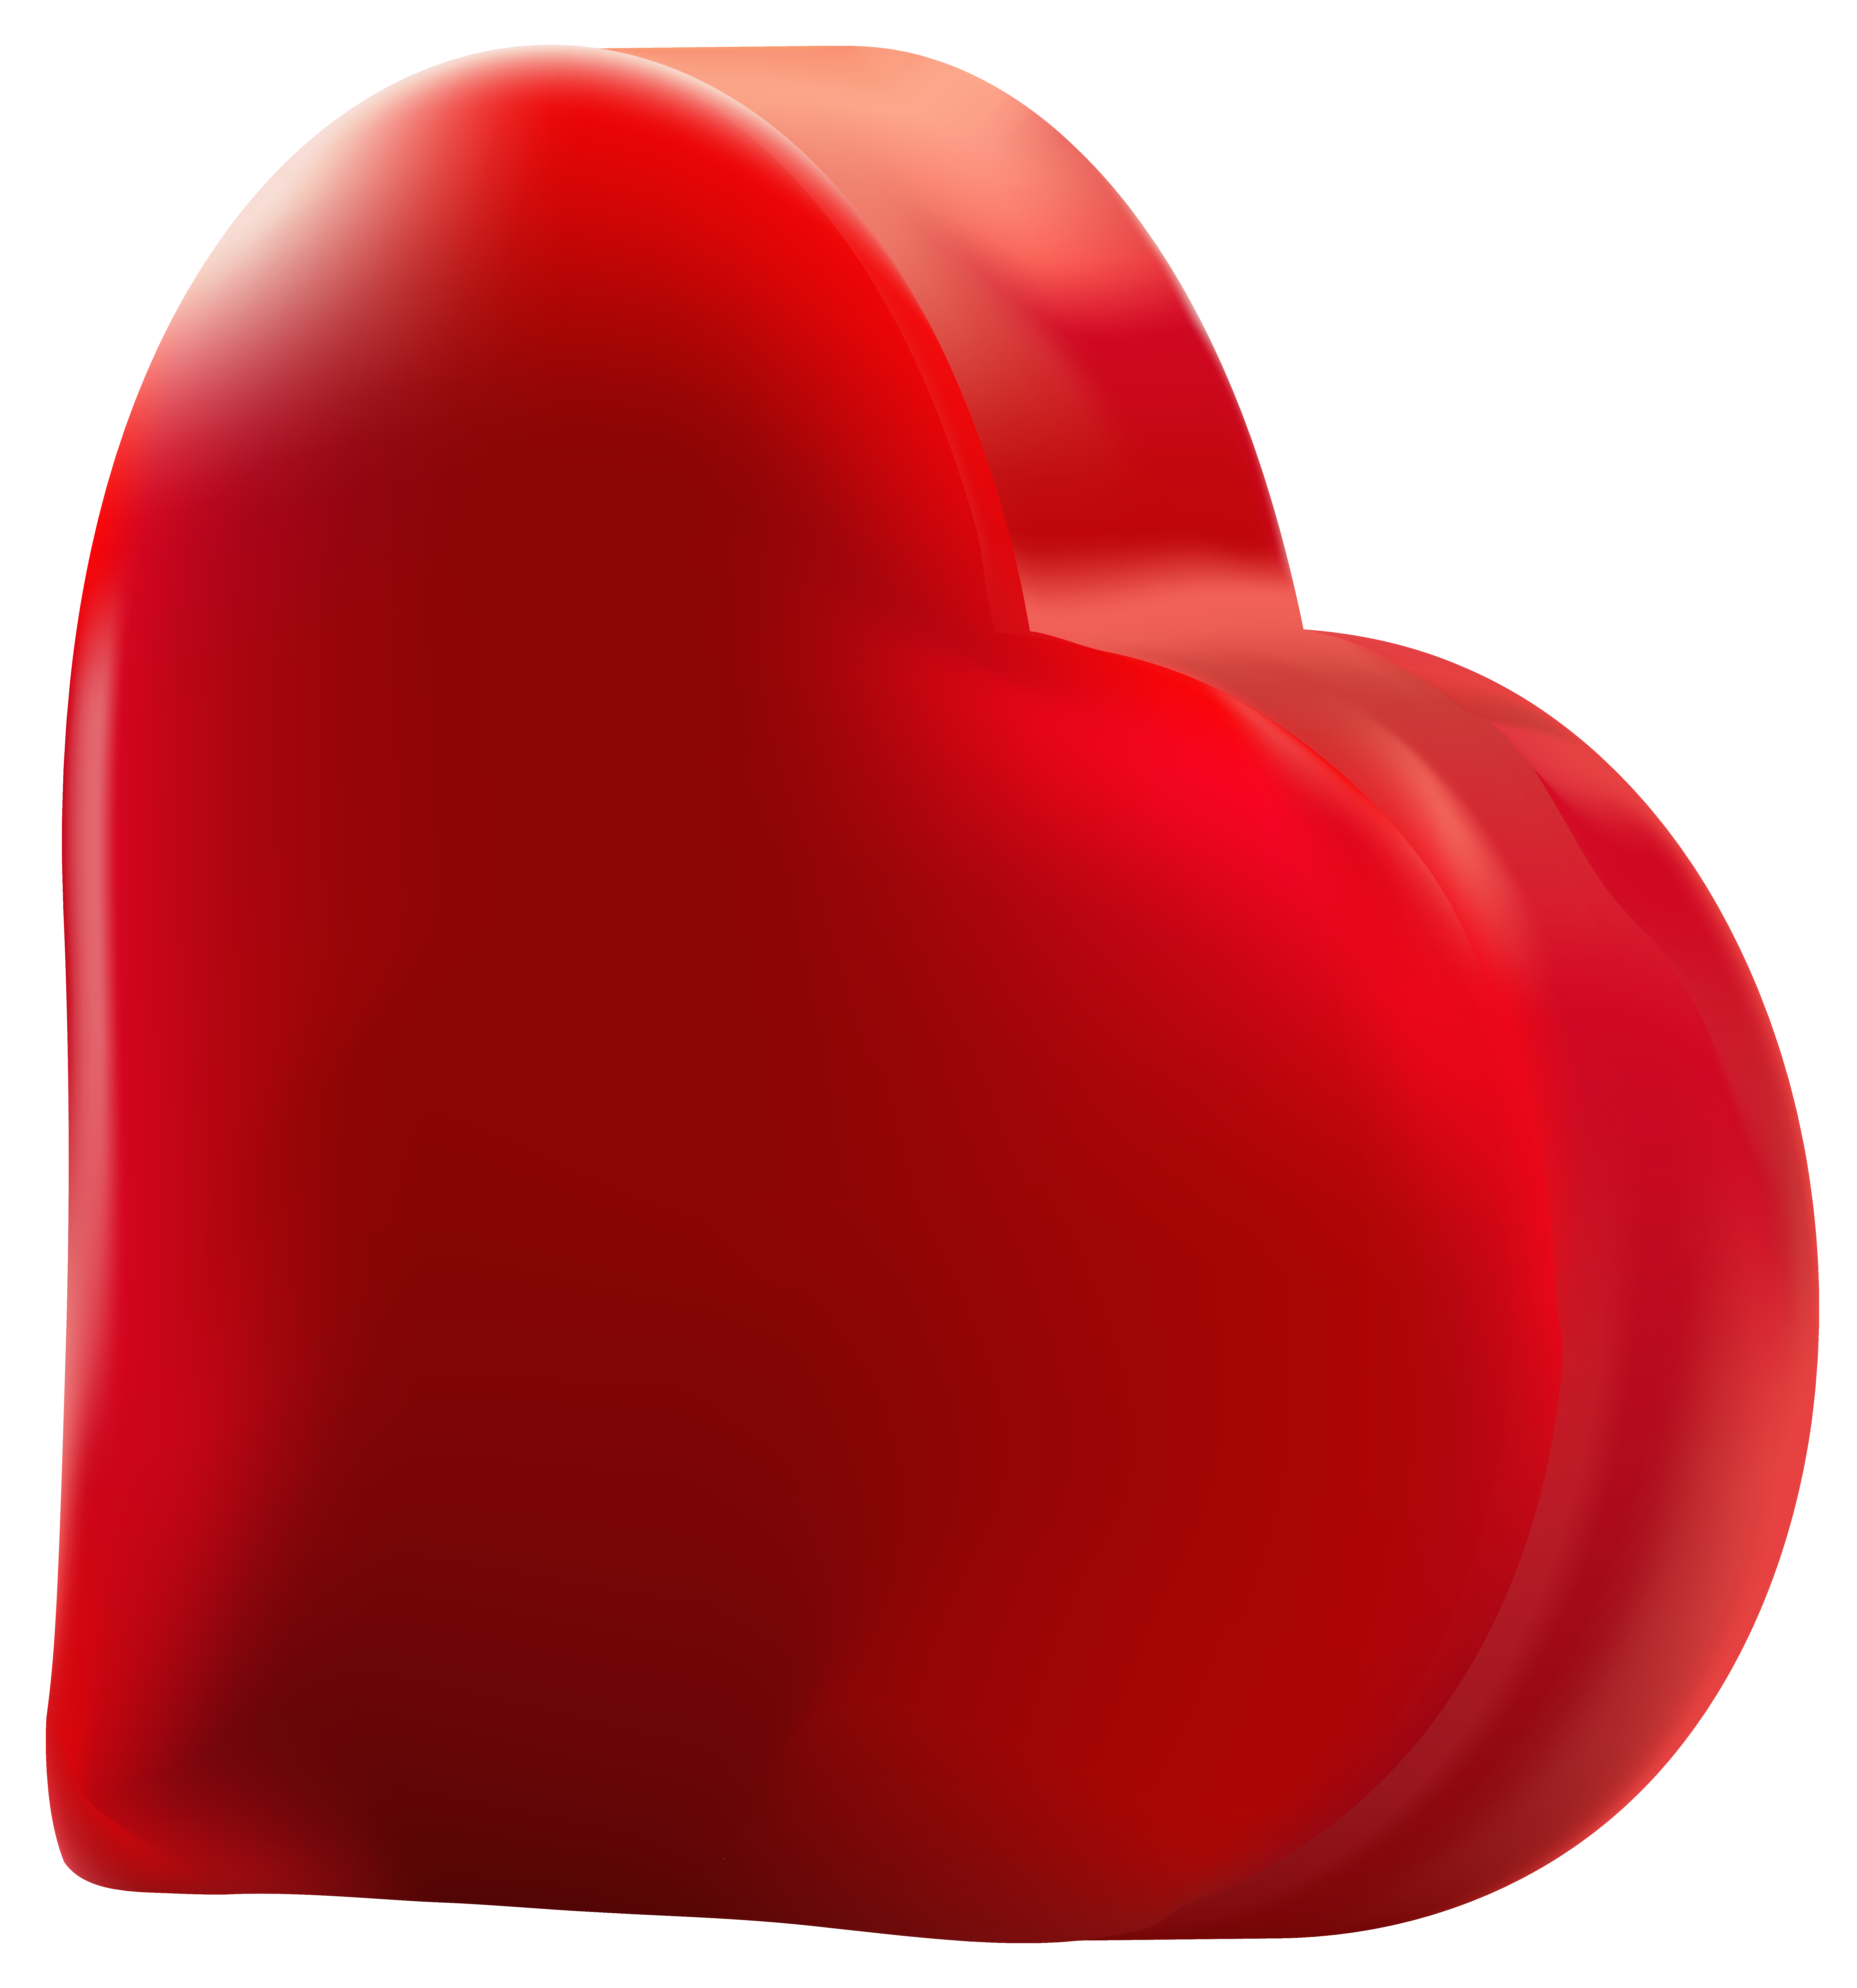 Red heart transparent png. Hearts clipart soccer